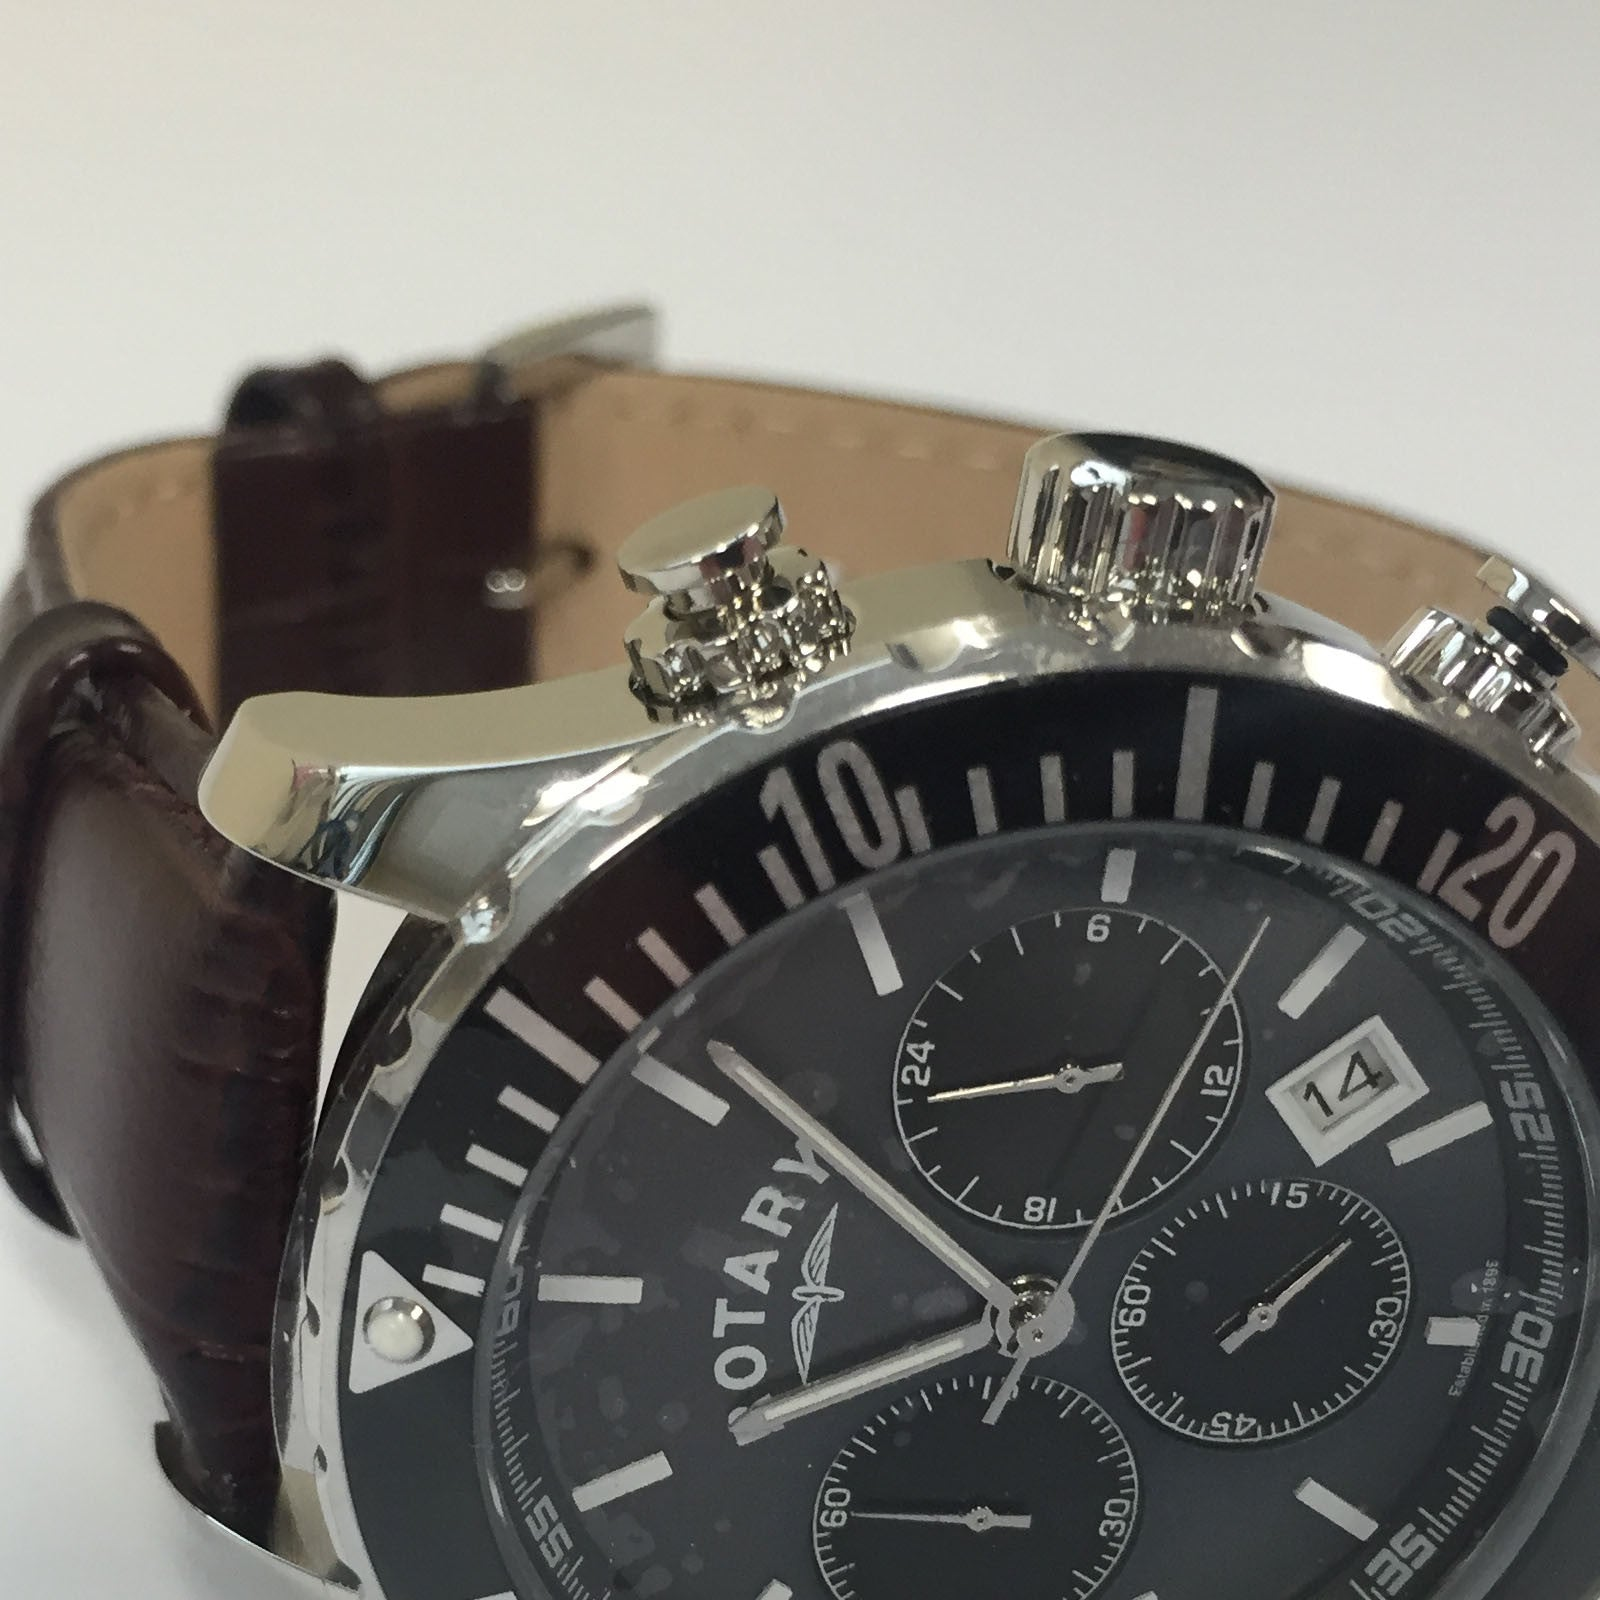 Mens Brown Leather Luxury Chronograph Quartz Black Dial Watch Rotary GS00314/04